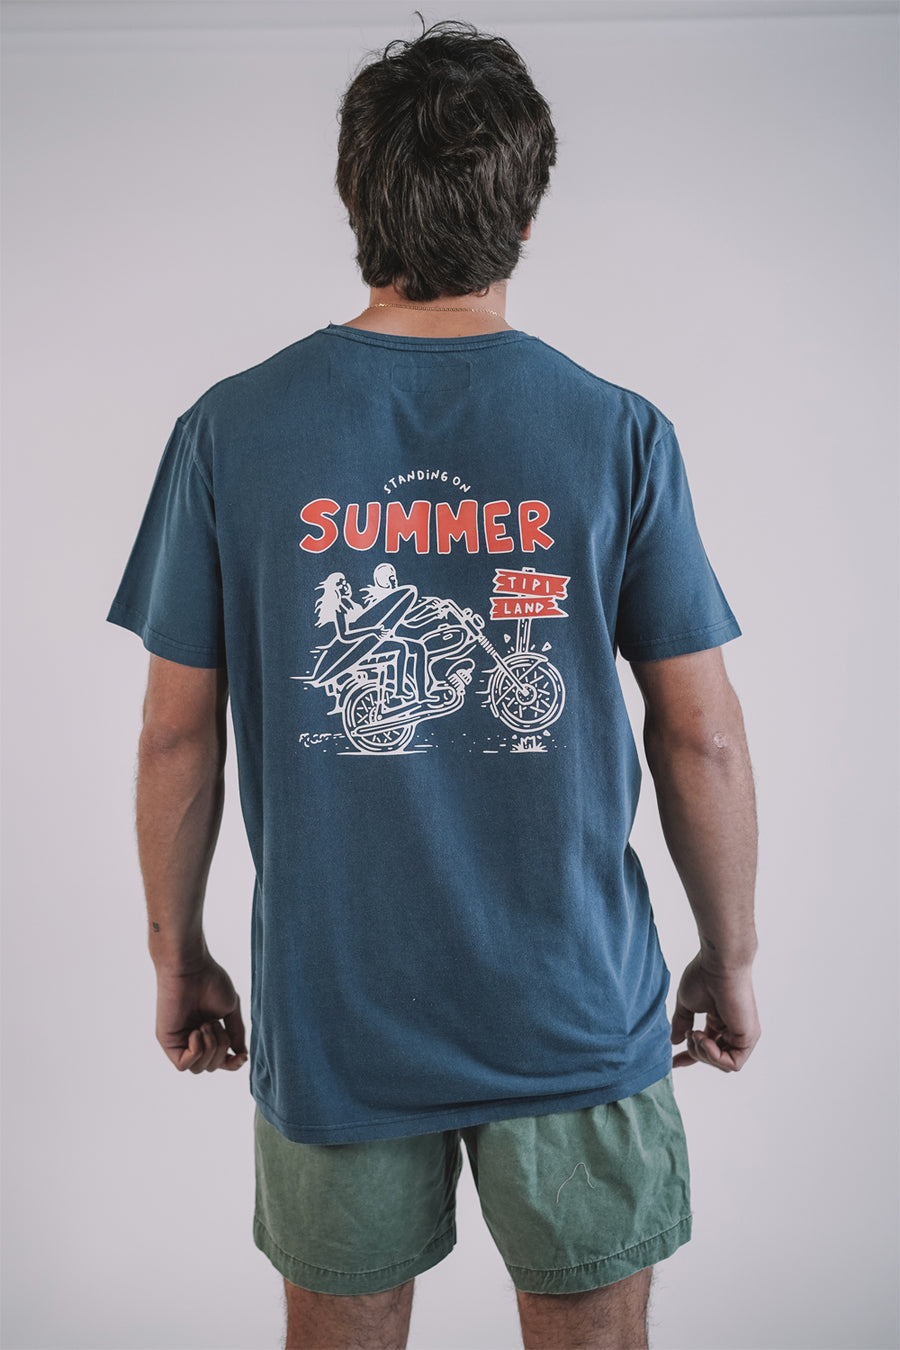 Summer Blue T-shirt